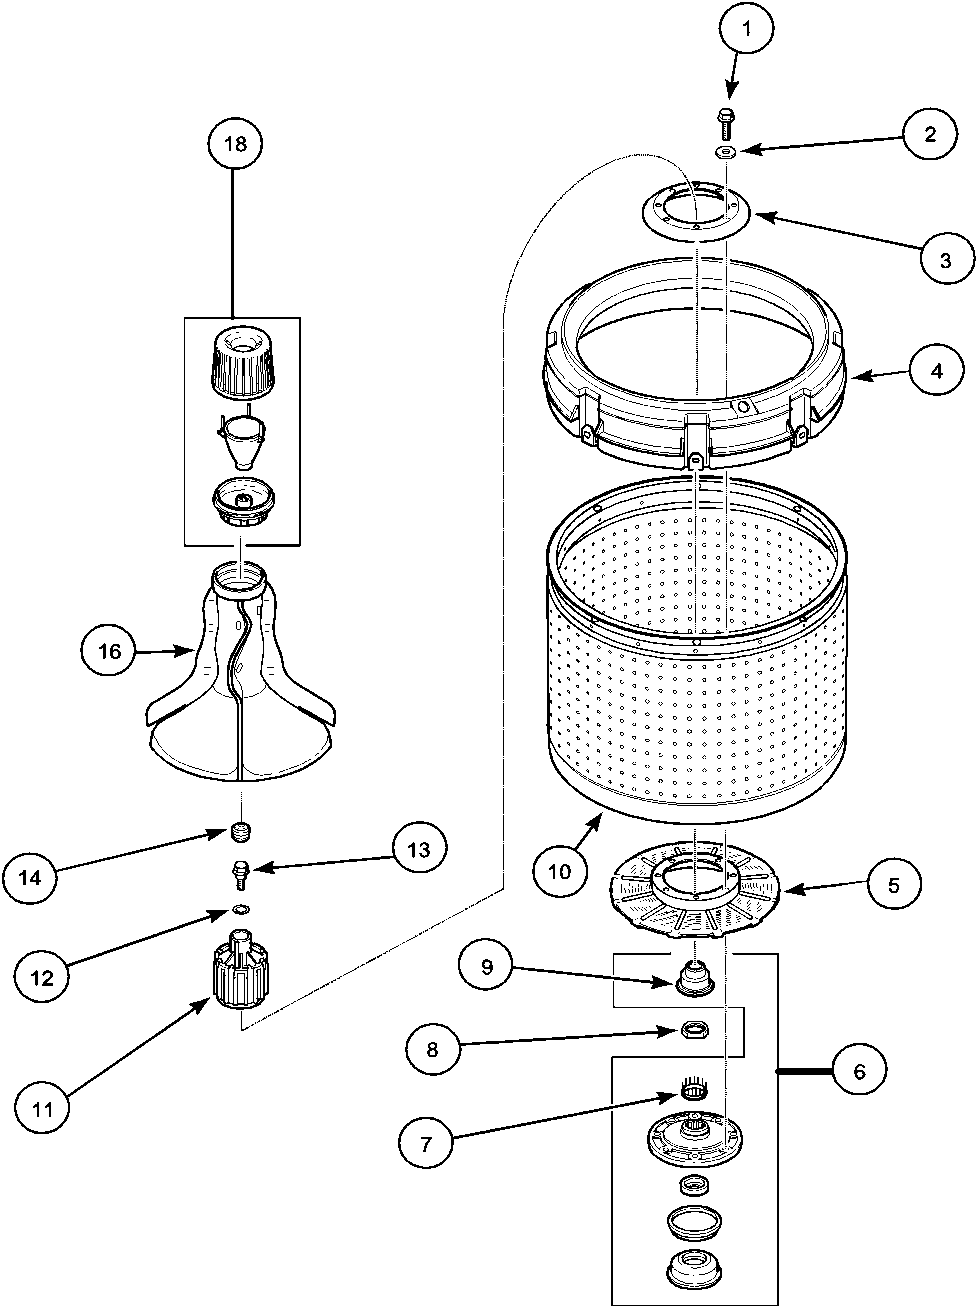 lg washing machine parts diagram with Appliance on Ice Maker In Refrigerator Wiring Diagram likewise Washing Machine Or Washer Dryer Is Not Spinning Draining How To Fix additionally 6h30w Samsung Dishwasher Model Xxxxx When Put further Whirlpool Ice Machine Wiring Diagram additionally Ct70 Wiring Diagrams.